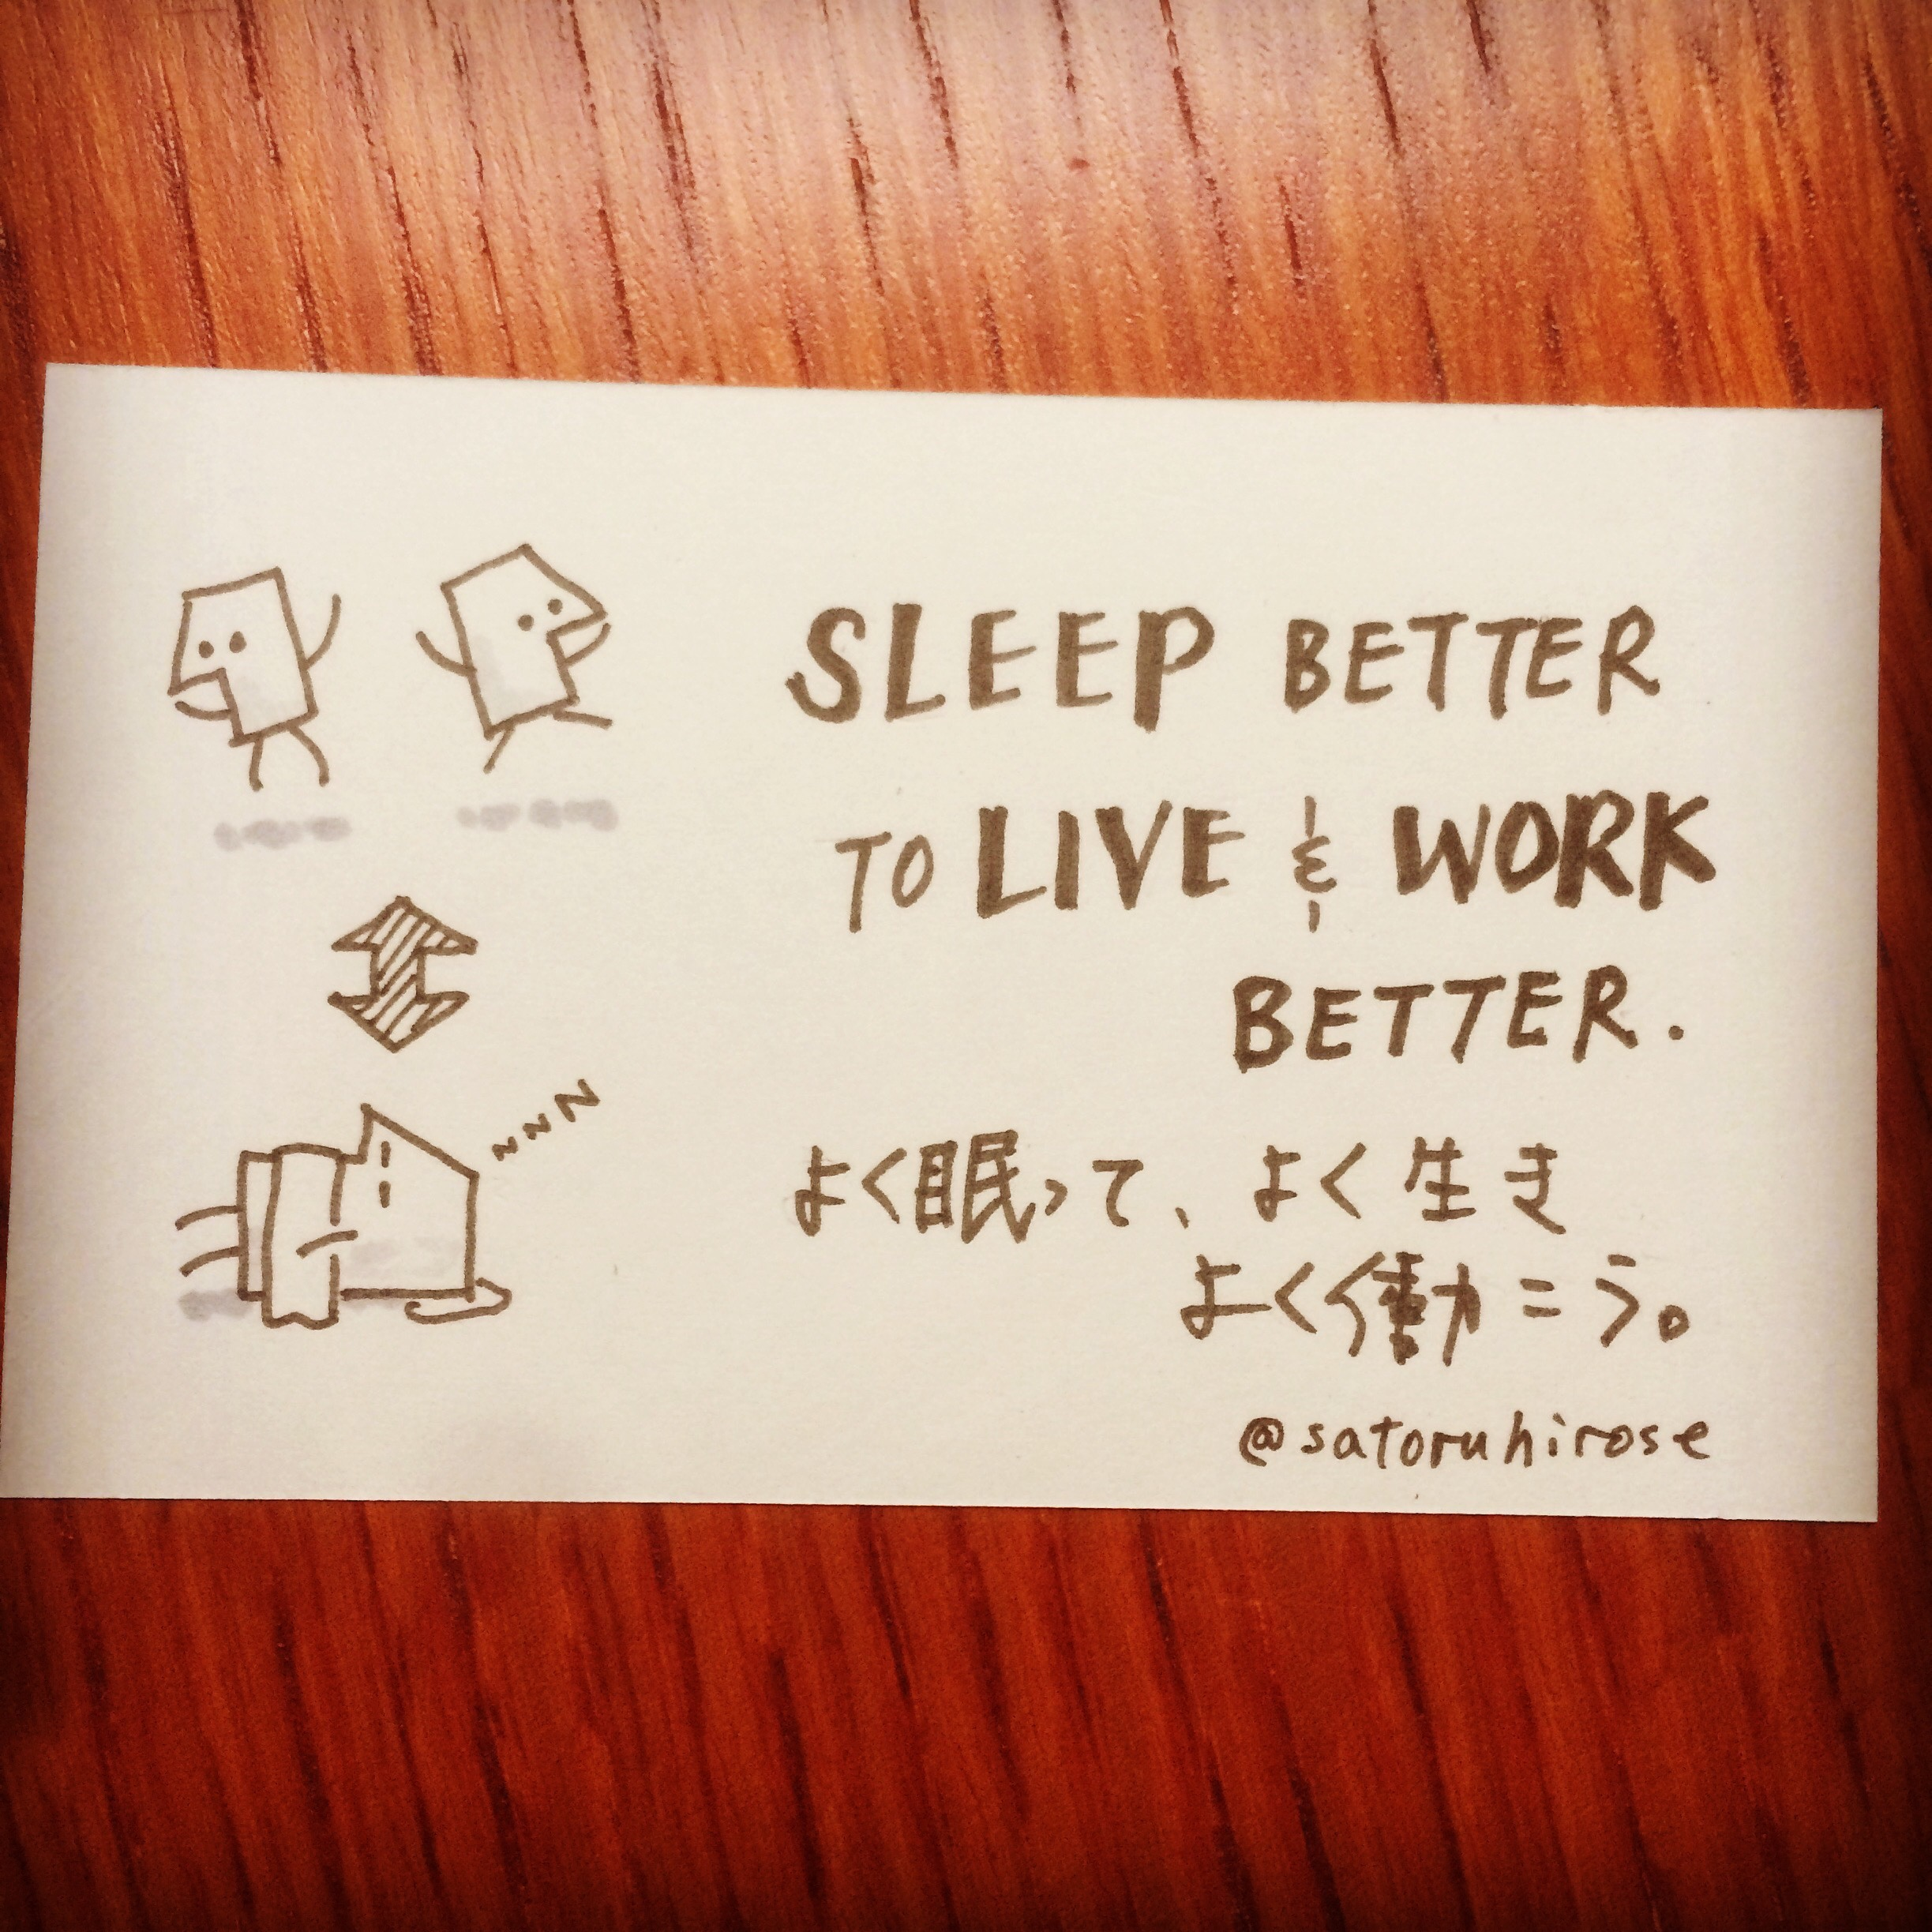 Sleep better to live and work better.